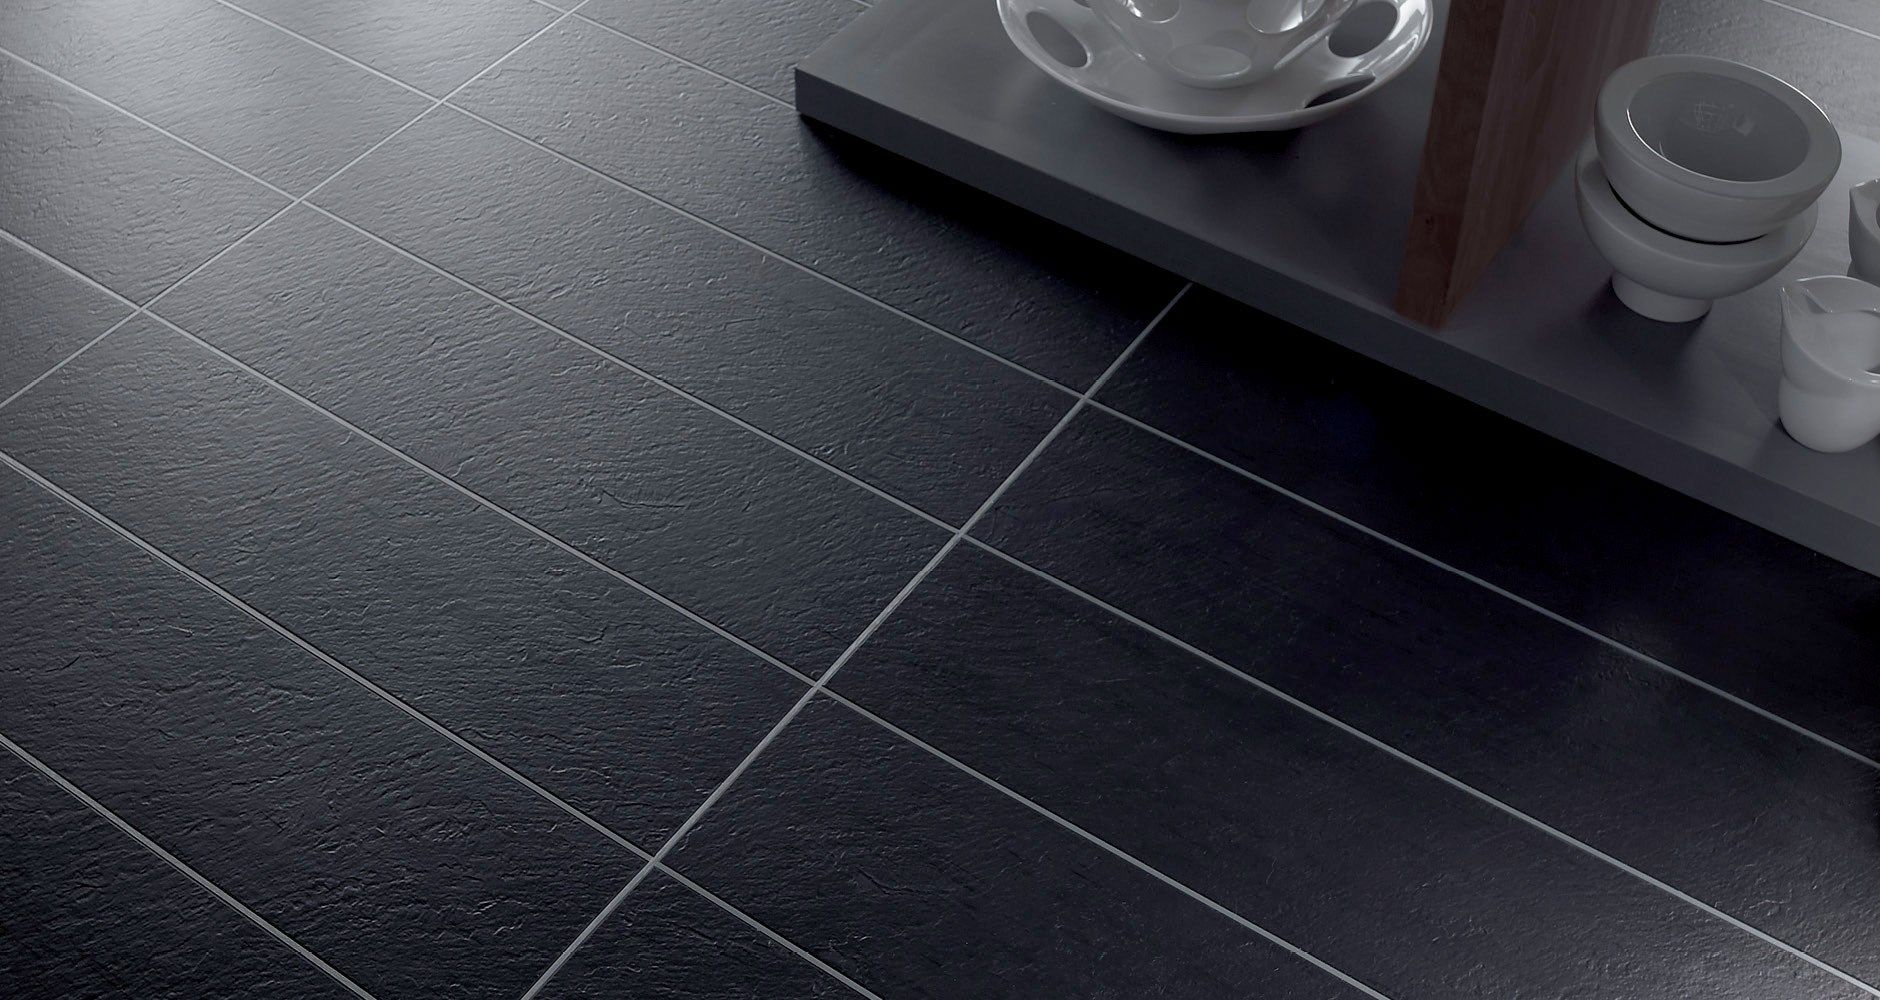 Slate For Kitchen Floor Picture Of Black Stone Flooring Kitchen Slate Vinyl Effect Stone